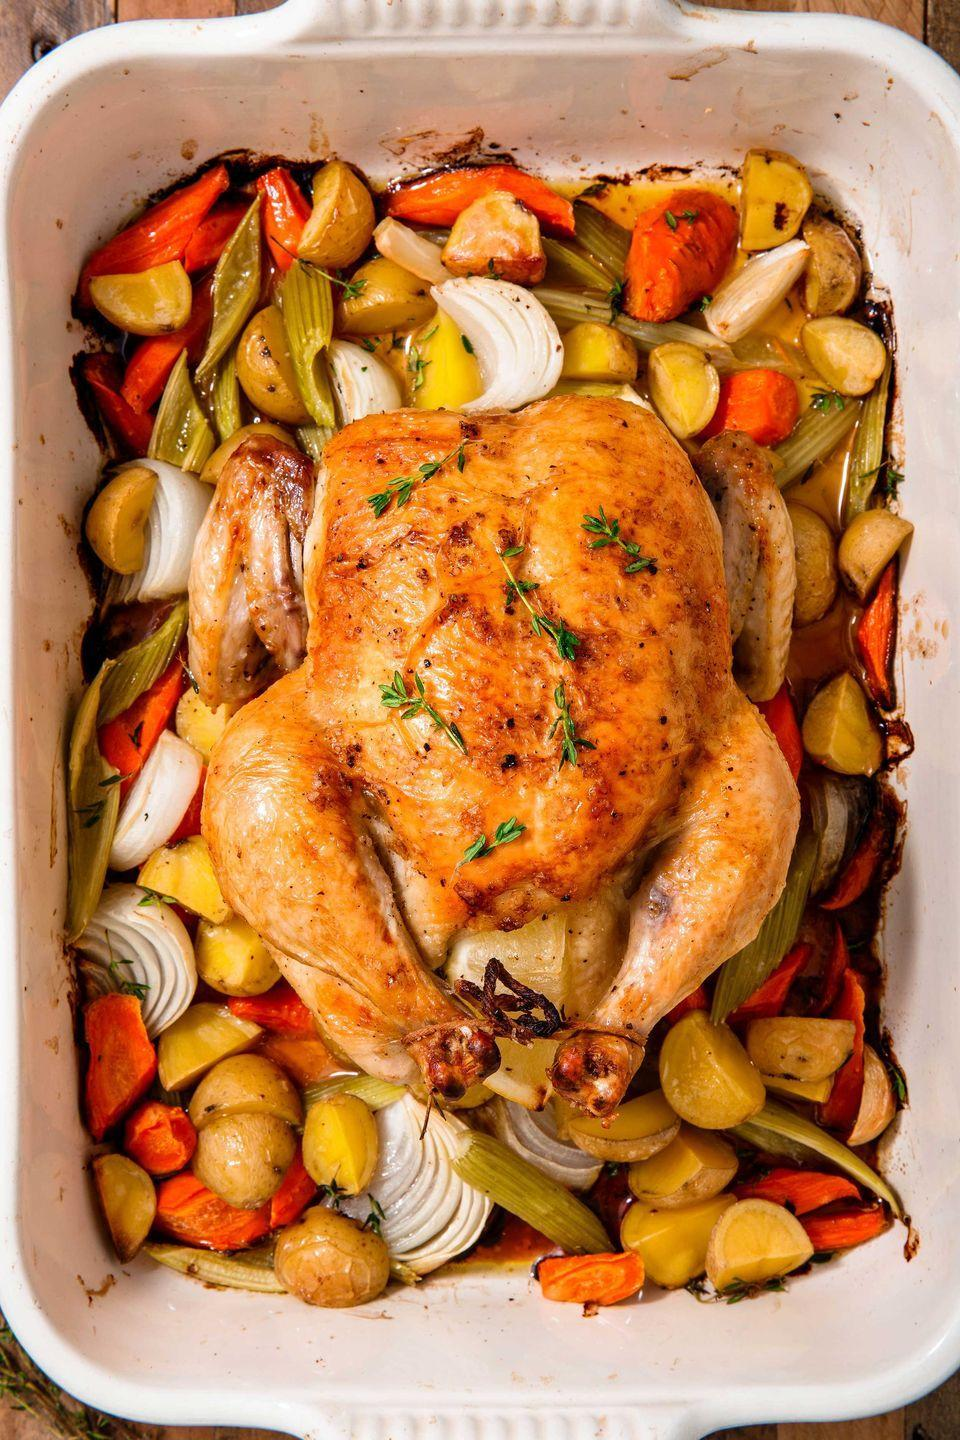 """<p>Intimidated by a whole chicken? Don't be! It's surprisingly easy to make, and there's nothing better than roast chicken leftovers. Great on salads and in sandwiches.</p><p>Get the <a href=""""http://www.delish.com/uk/cooking/recipes/a28926109/classic-roast-chicken-recipe/"""" rel=""""nofollow noopener"""" target=""""_blank"""" data-ylk=""""slk:Classic Roast Chicken"""" class=""""link rapid-noclick-resp"""">Classic Roast Chicken</a> recipe. </p>"""